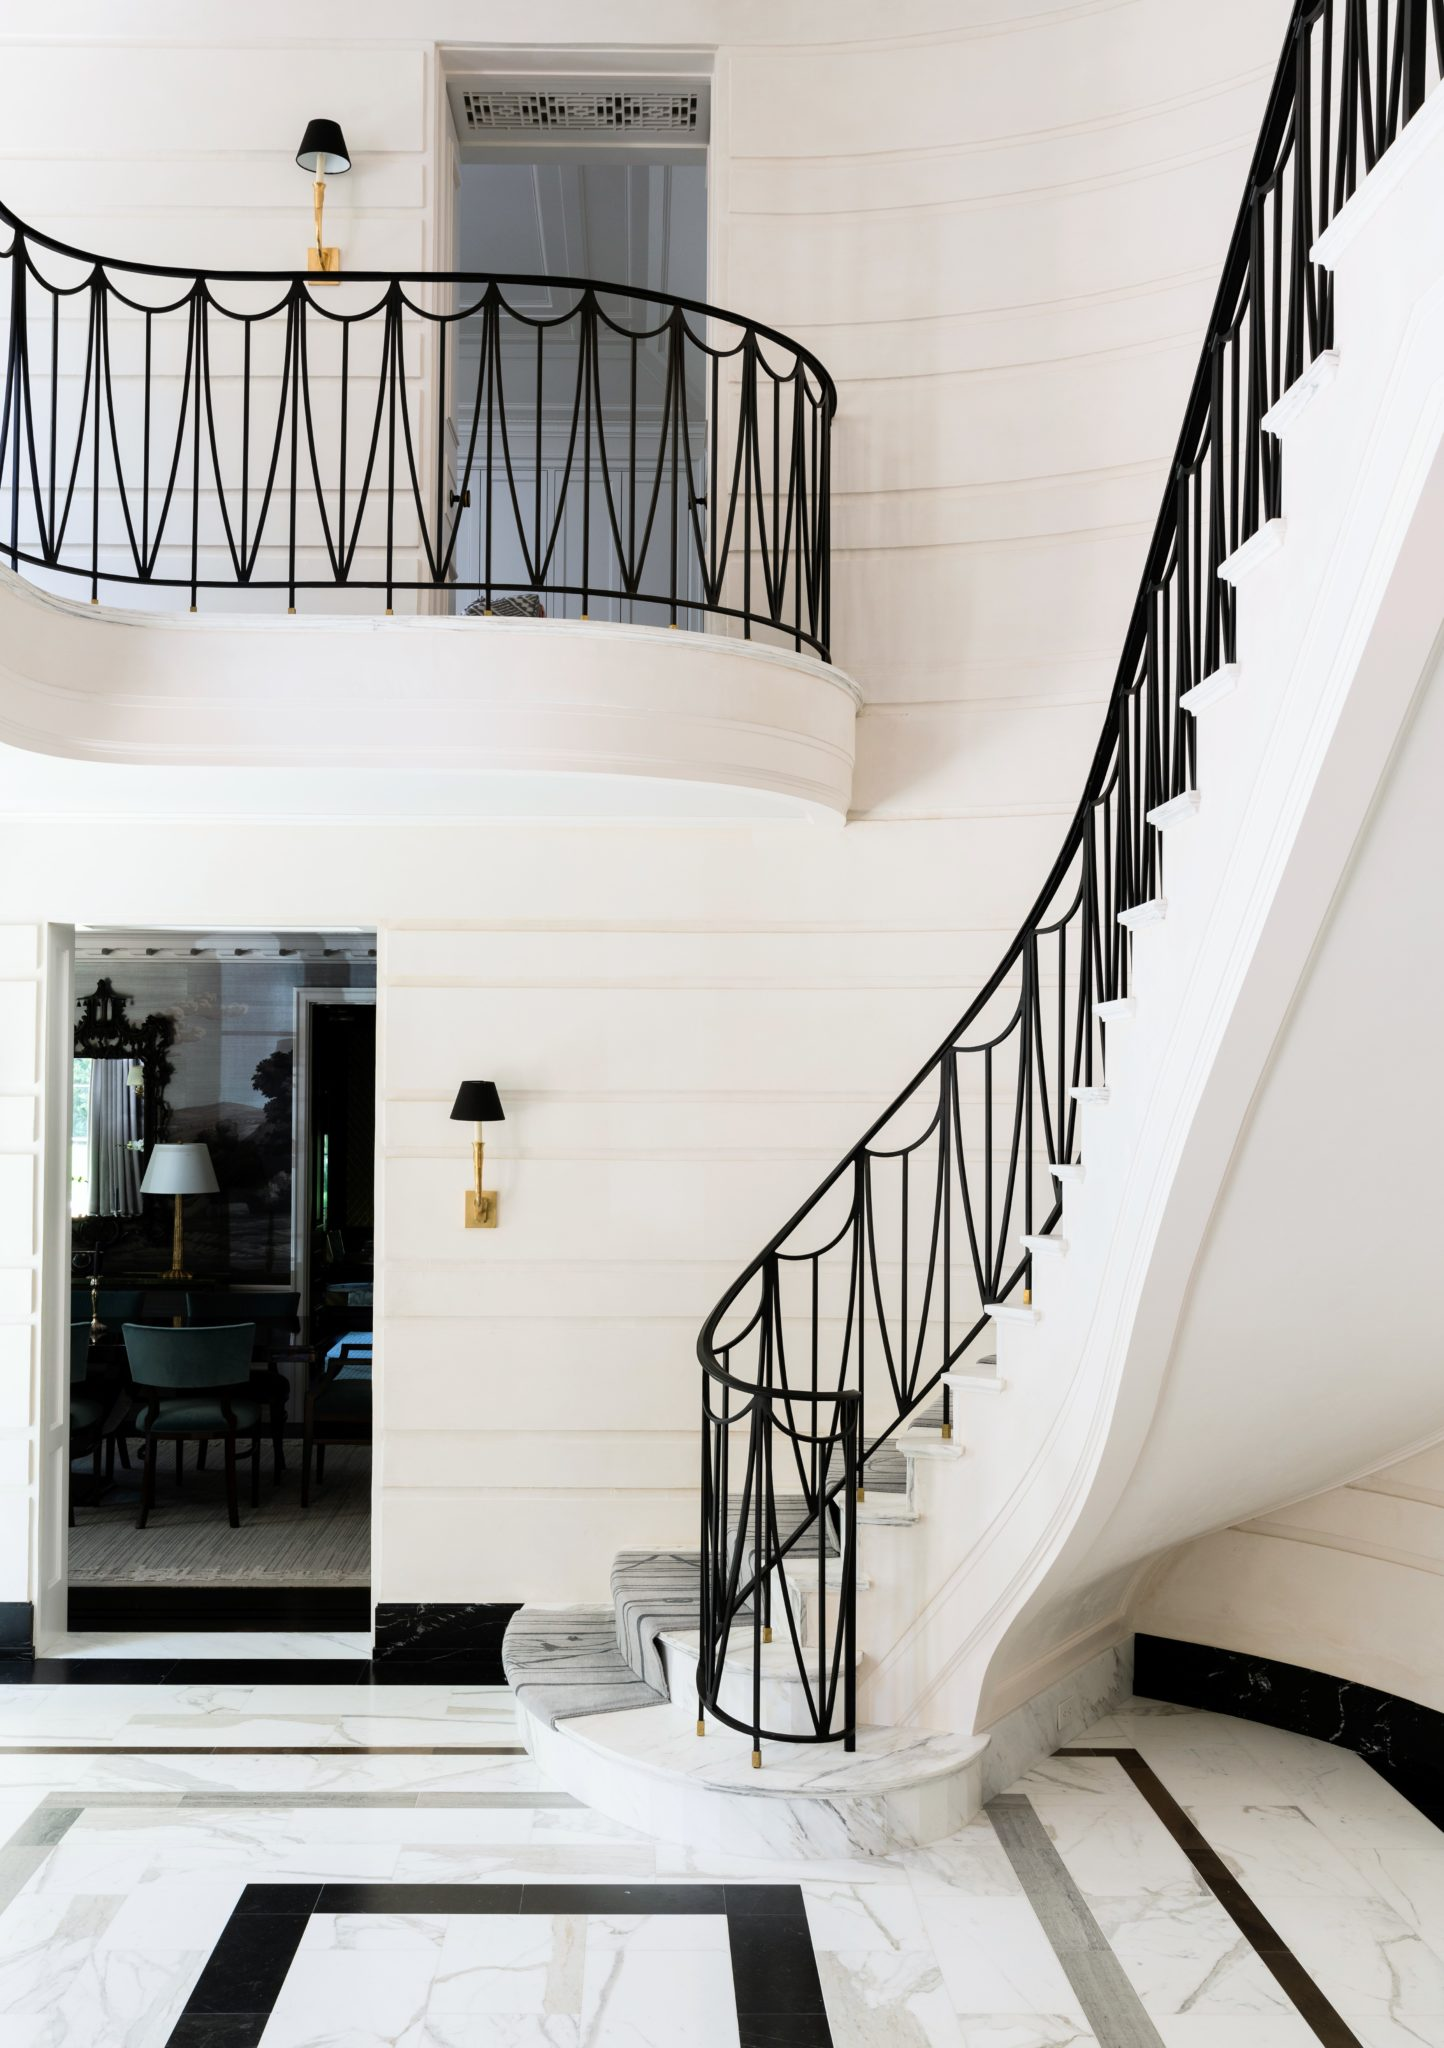 The curved design of the balcony and staircase imparts a surreal quality to the architecture, as if these elements were floating.